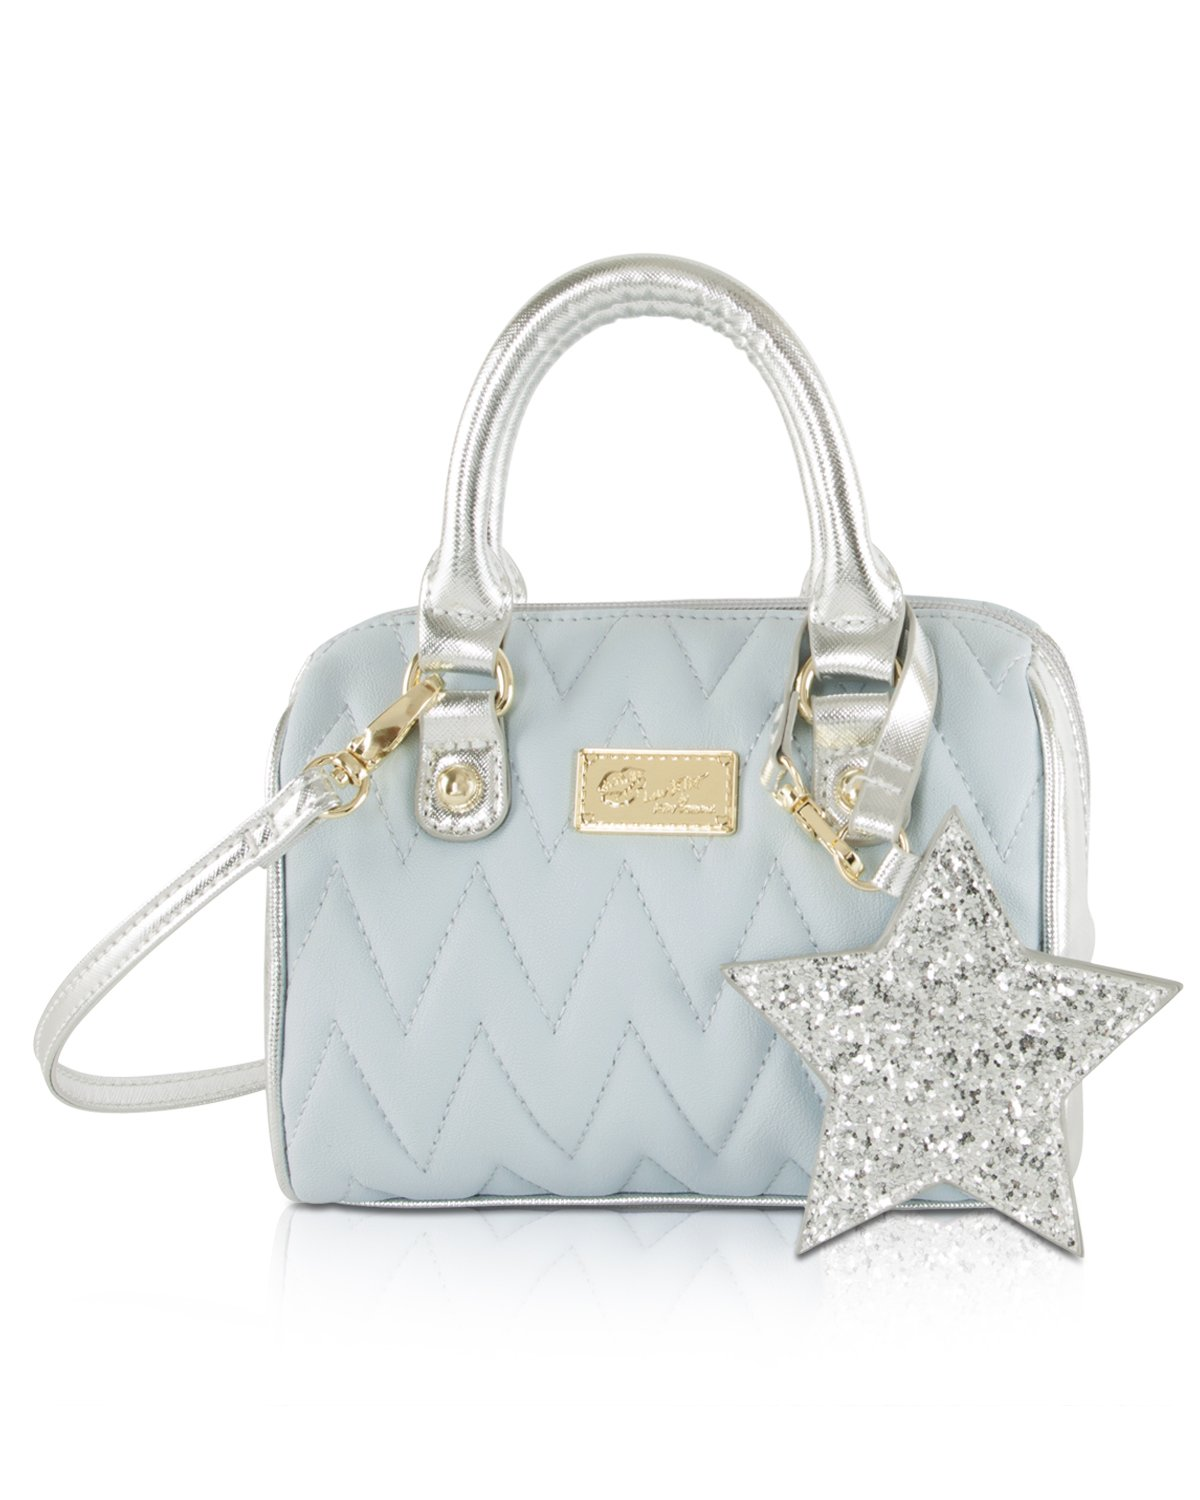 Luv Betsey Johnson Harlii Chevron Mini Crossbody Satchel Bag - Powder Blue